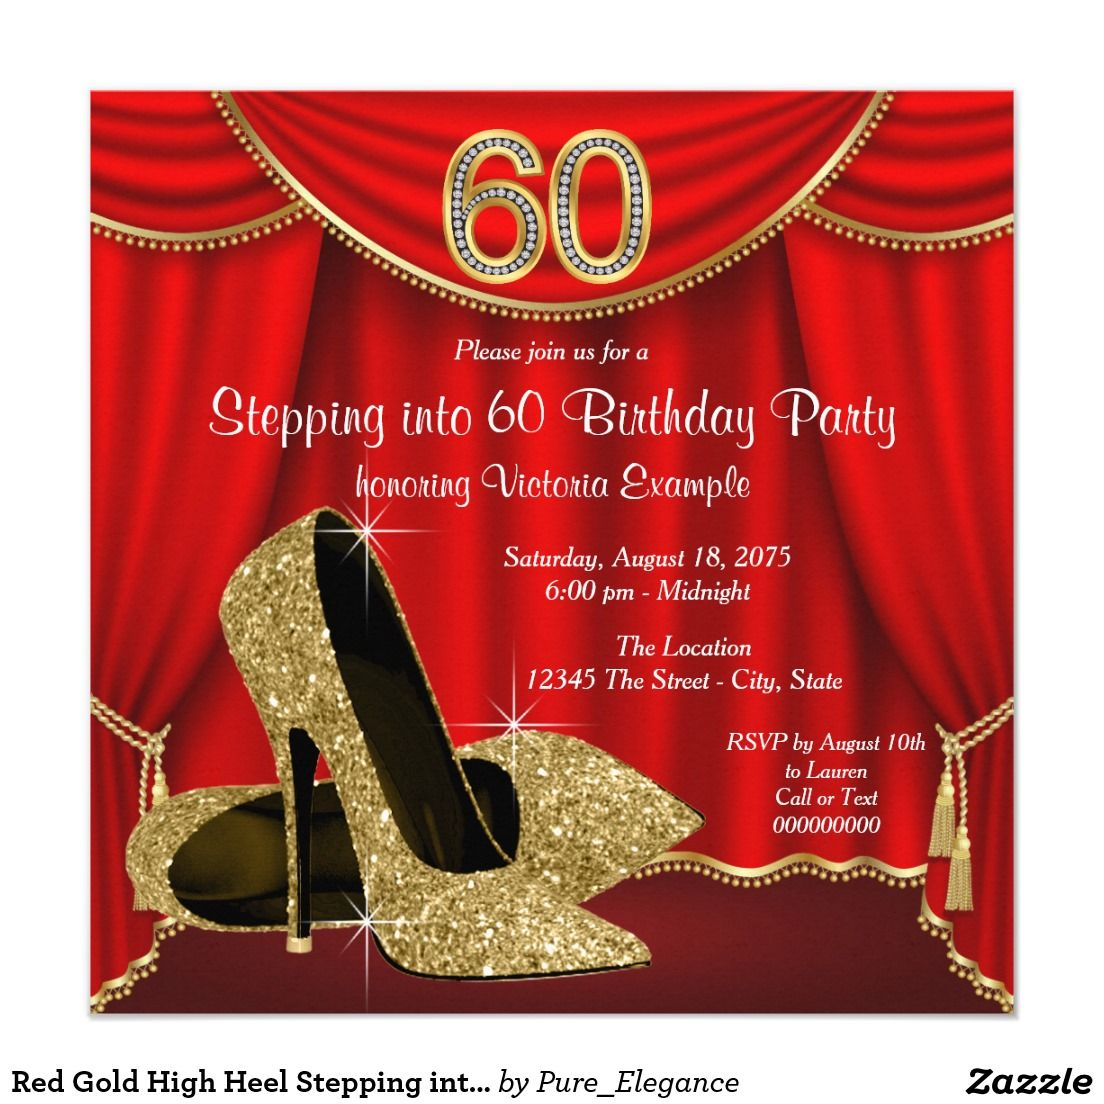 Red Gold High Heel Stepping into 60 Birthday Party Card | Red gold ...